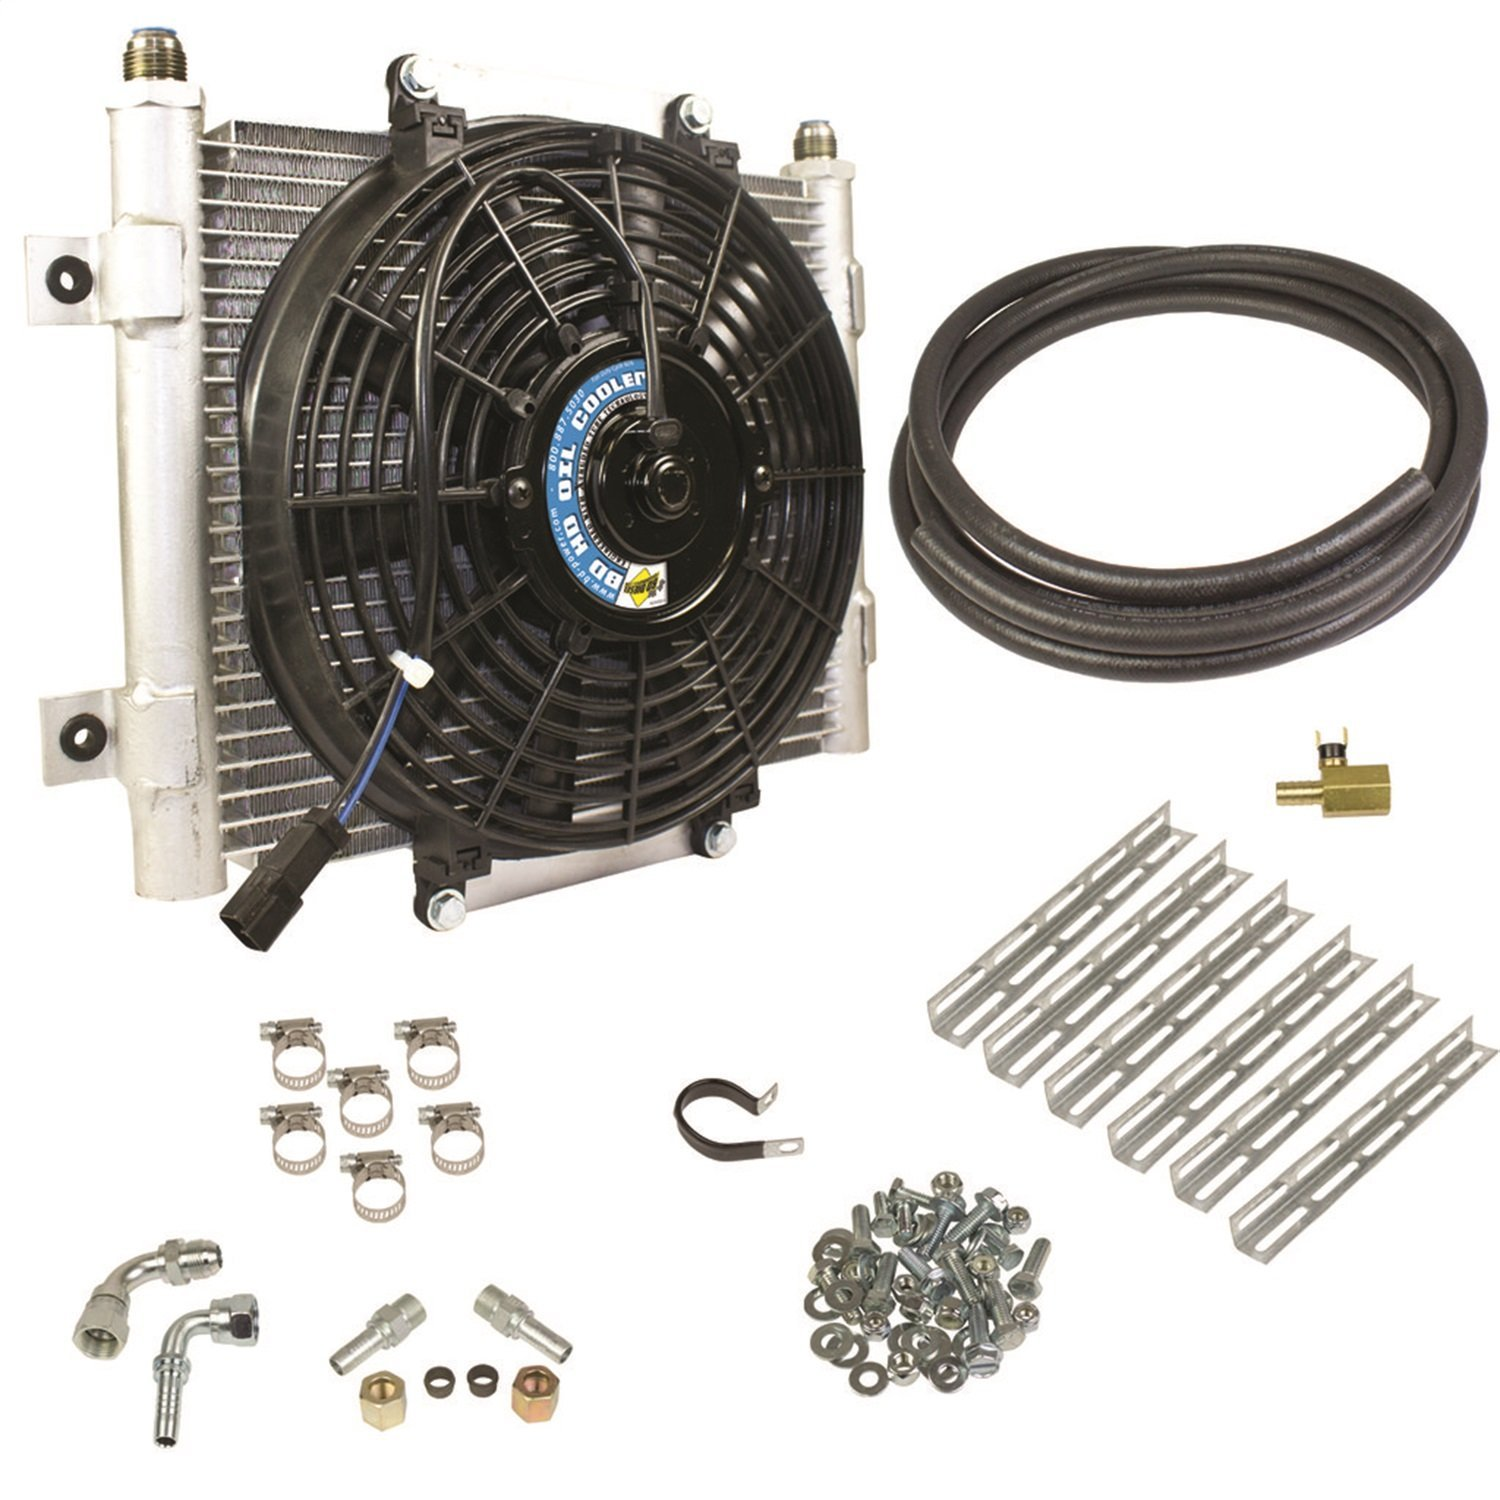 11 x 7 1//2 x 1 3//4 with an Fittings Flex-a-lite 700021 Remote Mount Stacked Plate 21-Row Engine-Oil Cooler with Electric Fan,